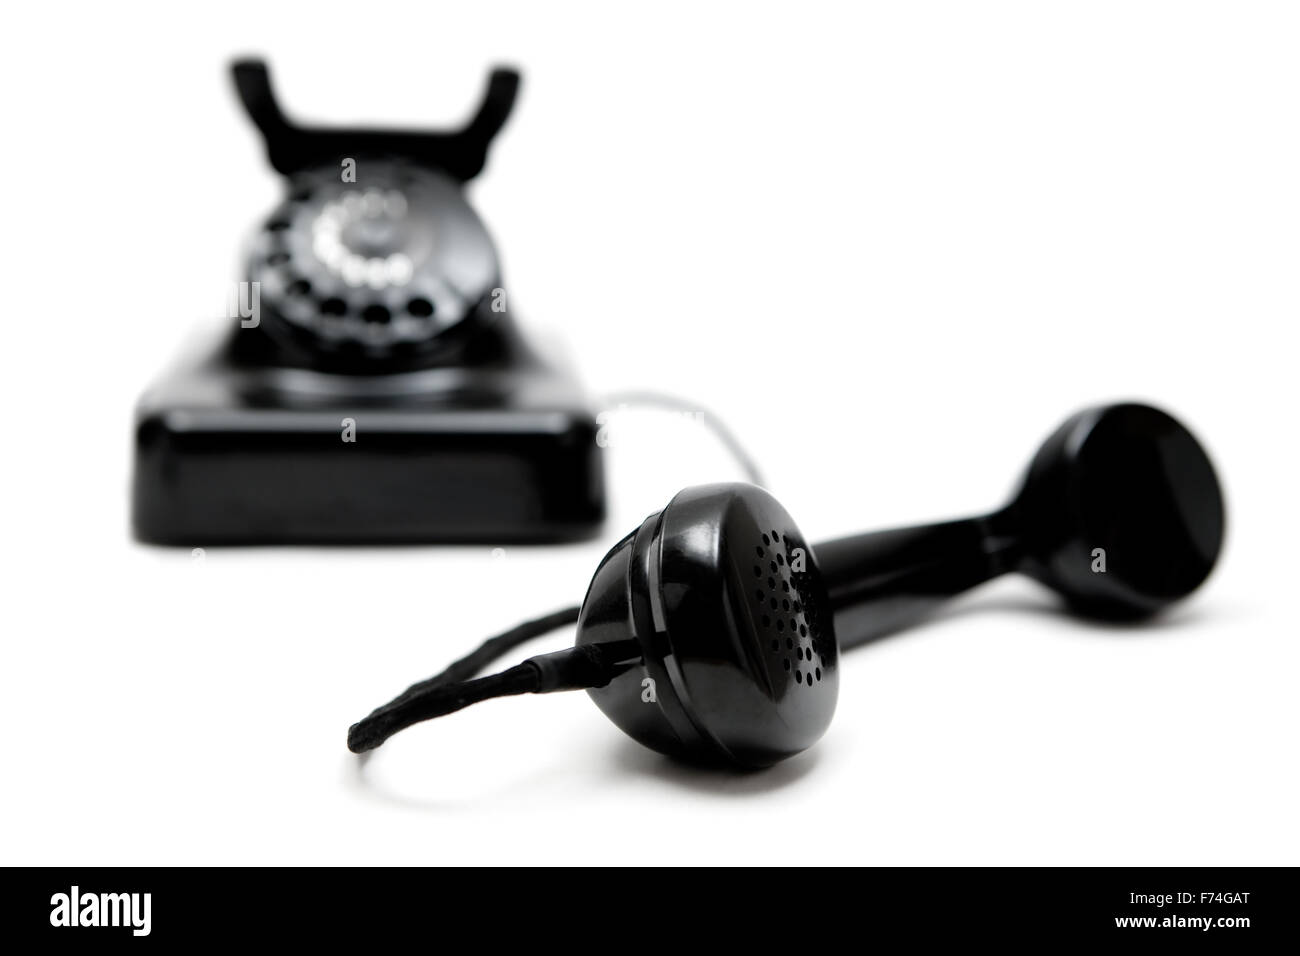 Vintage Telephone - Stock Image